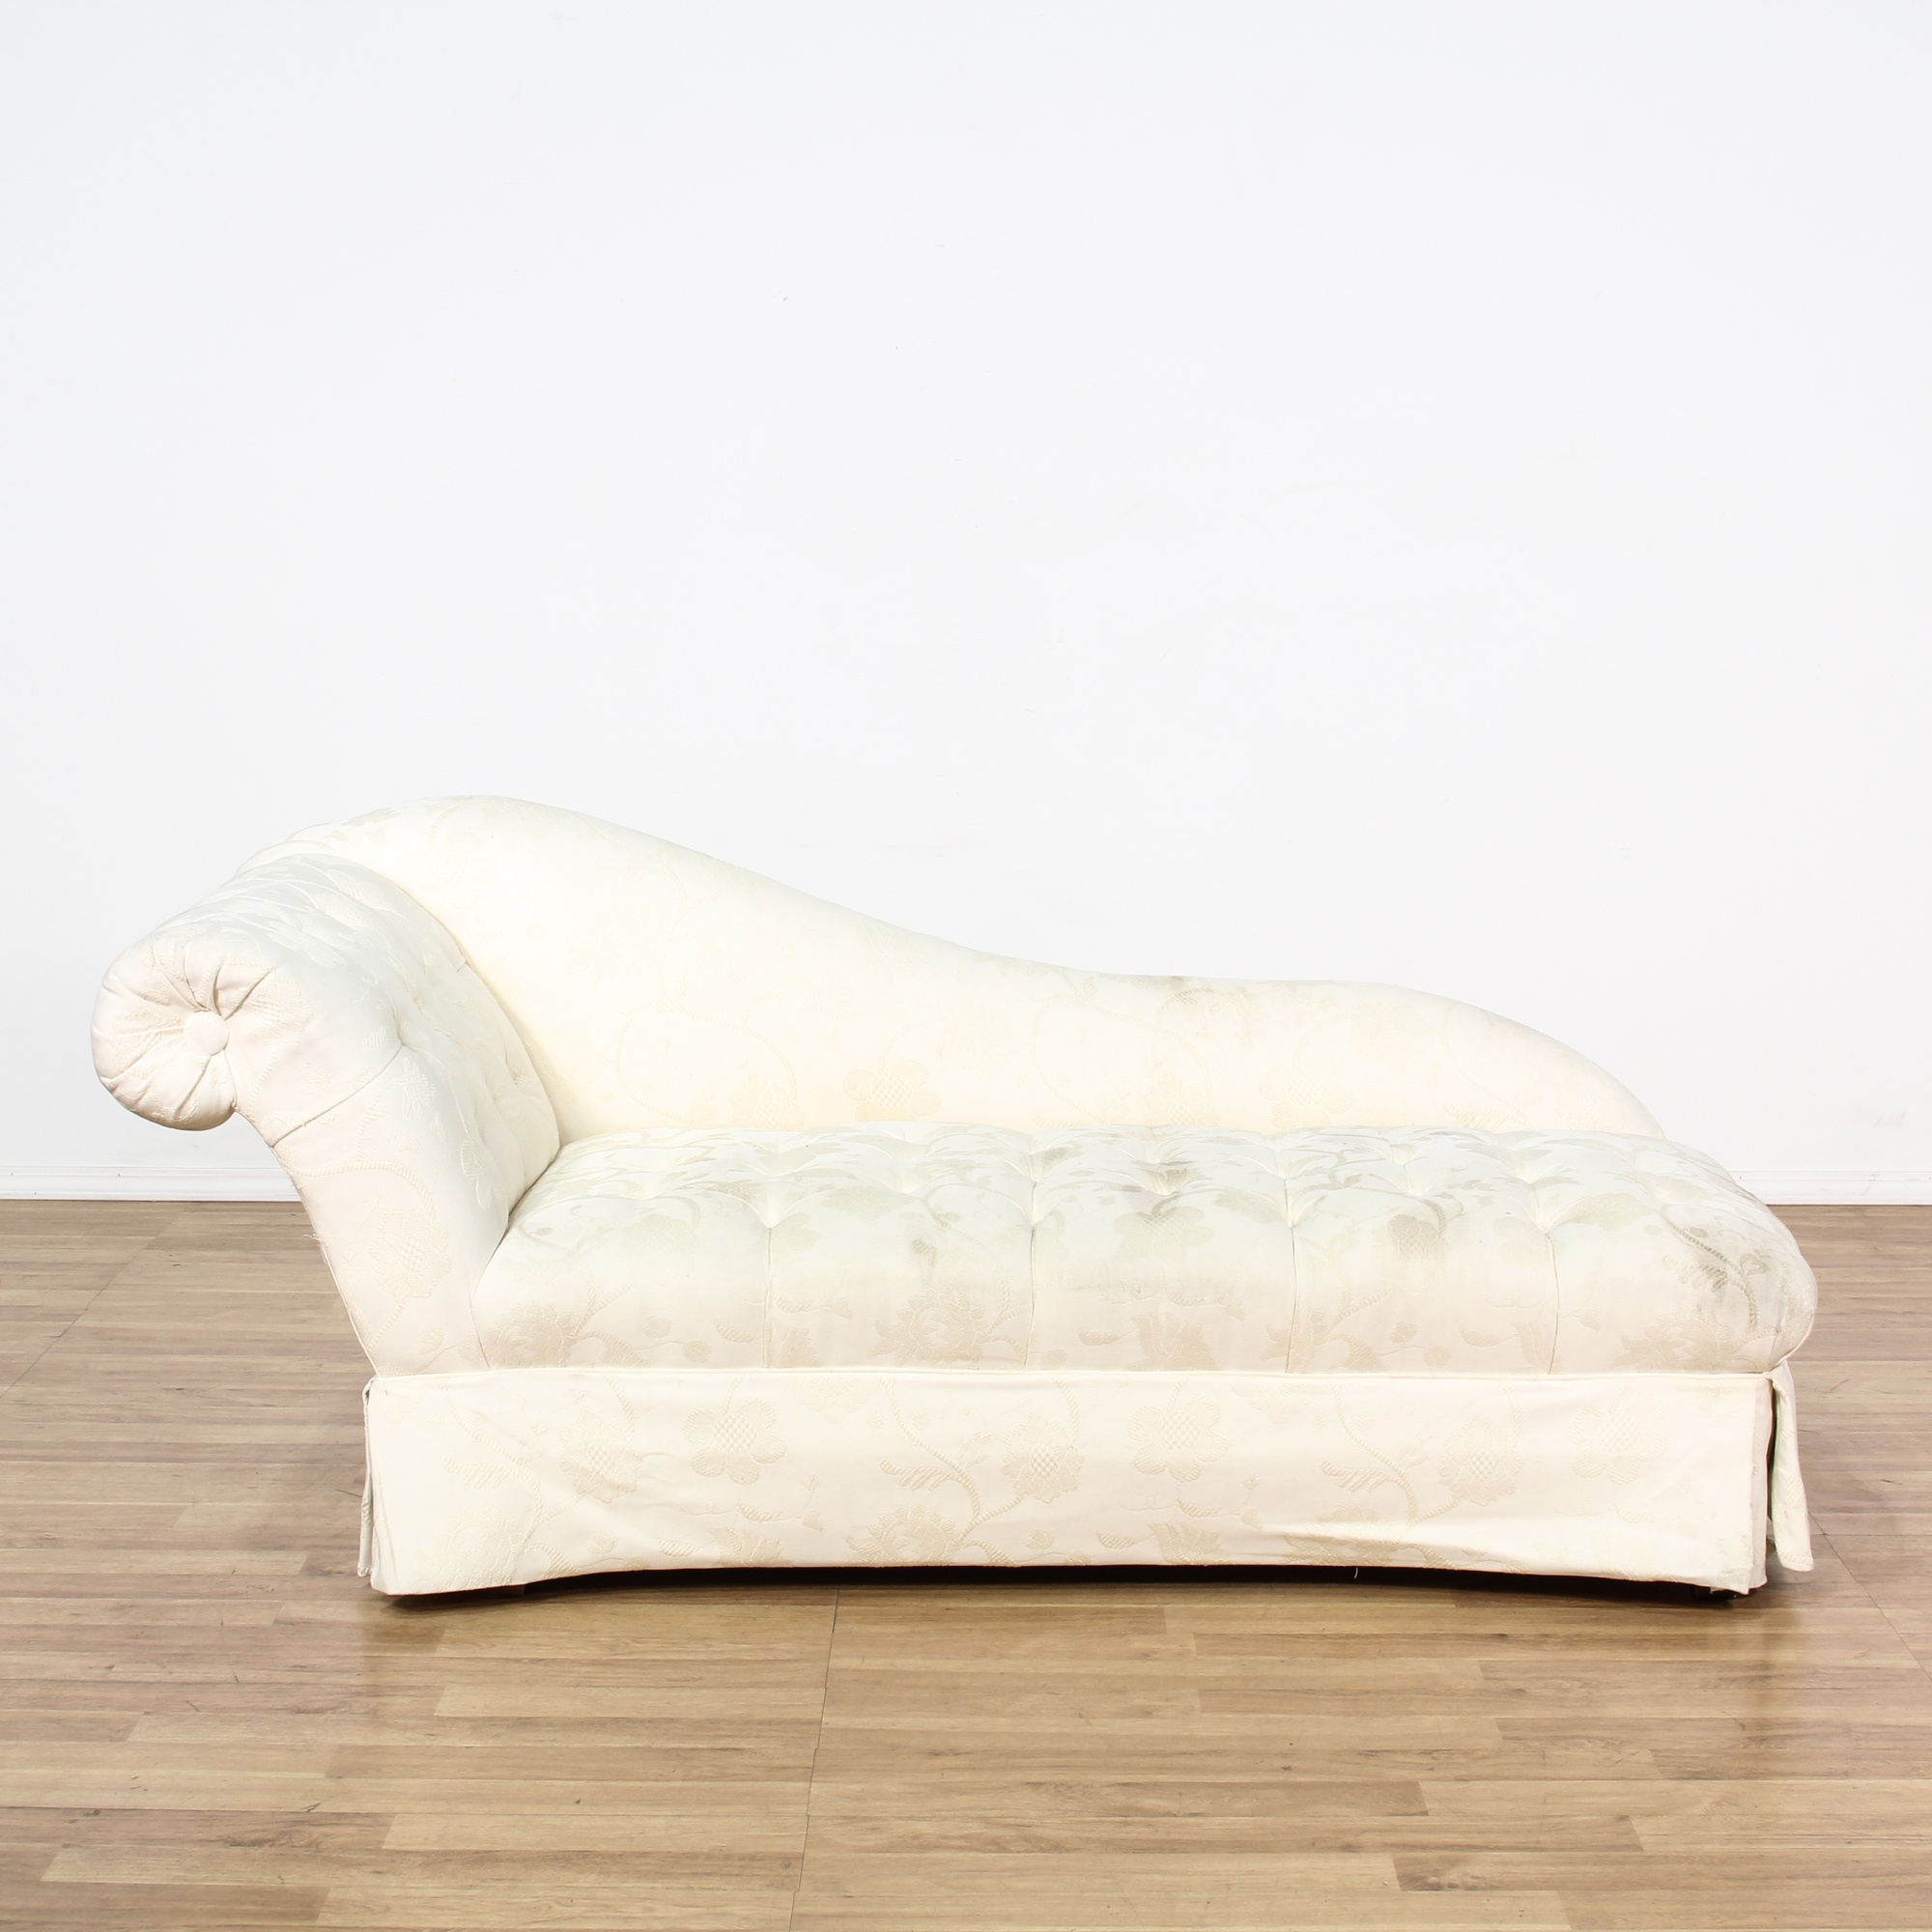 Curved white floral tufted chaise lounge loveseat for Alaina tufted chaise in white